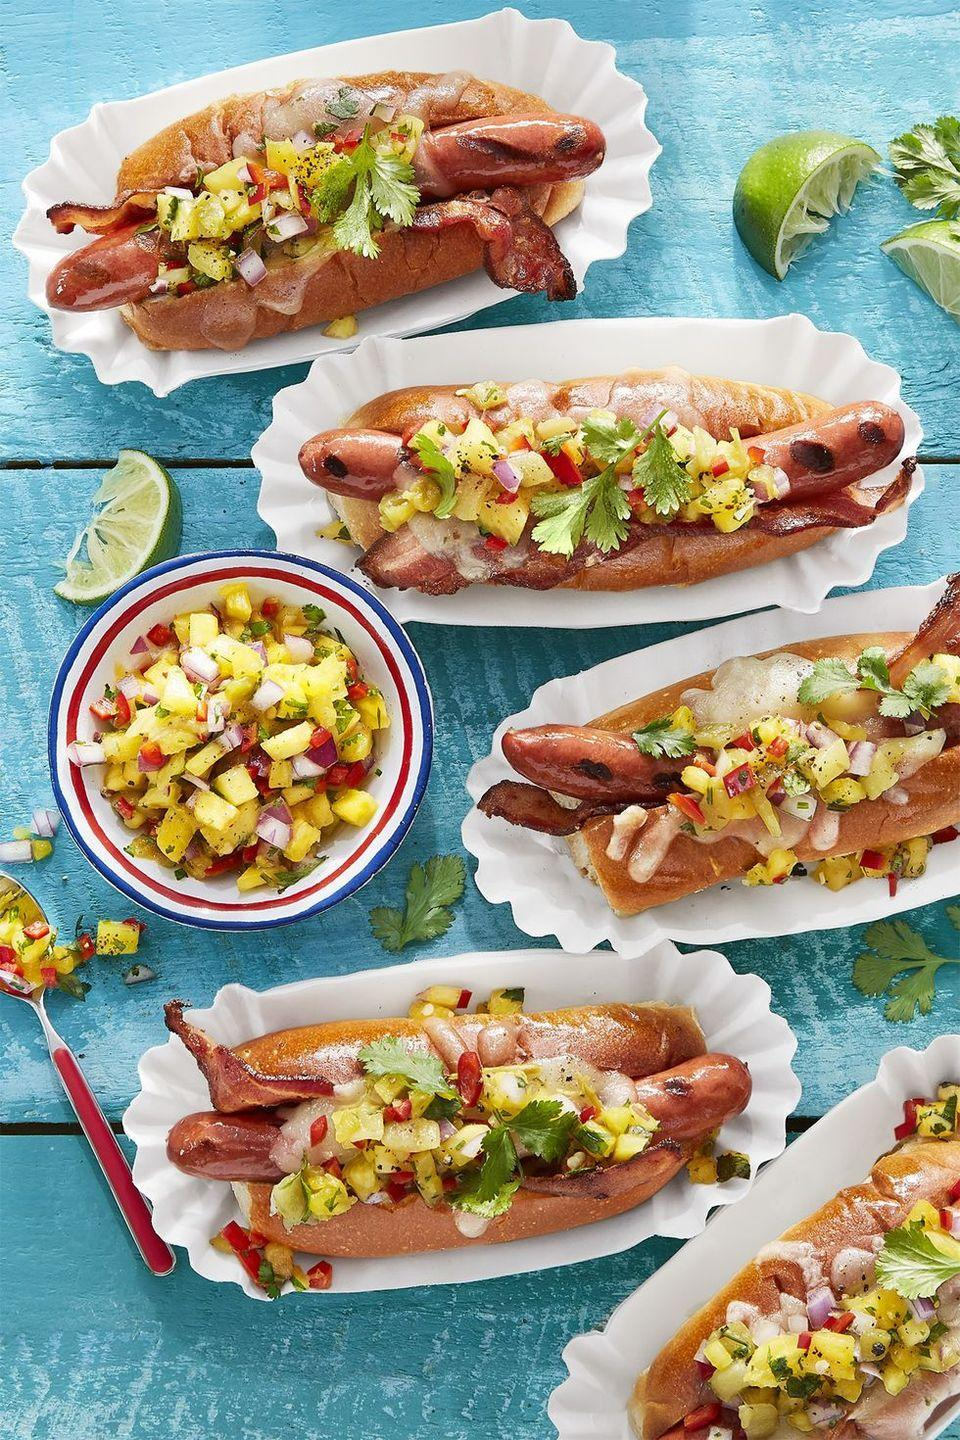 "<p>Hawaiian pizza fans, this one's for you. The combo of sweet and savory is great on any dipping device.</p><p><em><a href=""https://www.countryliving.com/food-drinks/recipes/a43064/hatch-pineapple-salsa-recipe/"" rel=""nofollow noopener"" target=""_blank"" data-ylk=""slk:Get the recipe from Country Living »"" class=""link rapid-noclick-resp"">Get the recipe from Country Living »</a></em></p>"